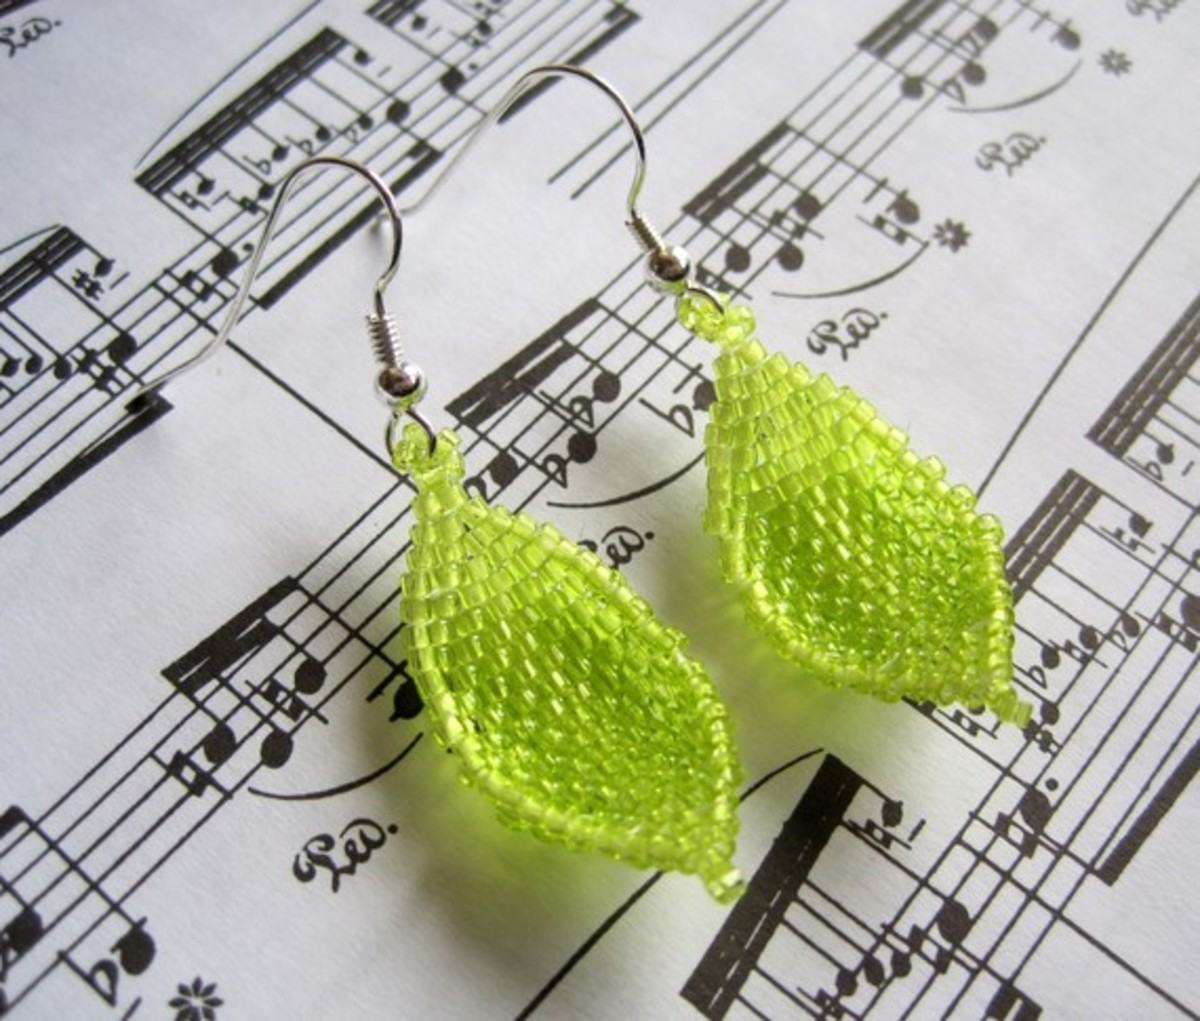 Beaded Dangle Earrings - Lime Green Leaves: I like to combined coordinating shades of delicas and Czech seed beads to make curved leaves for earrings.